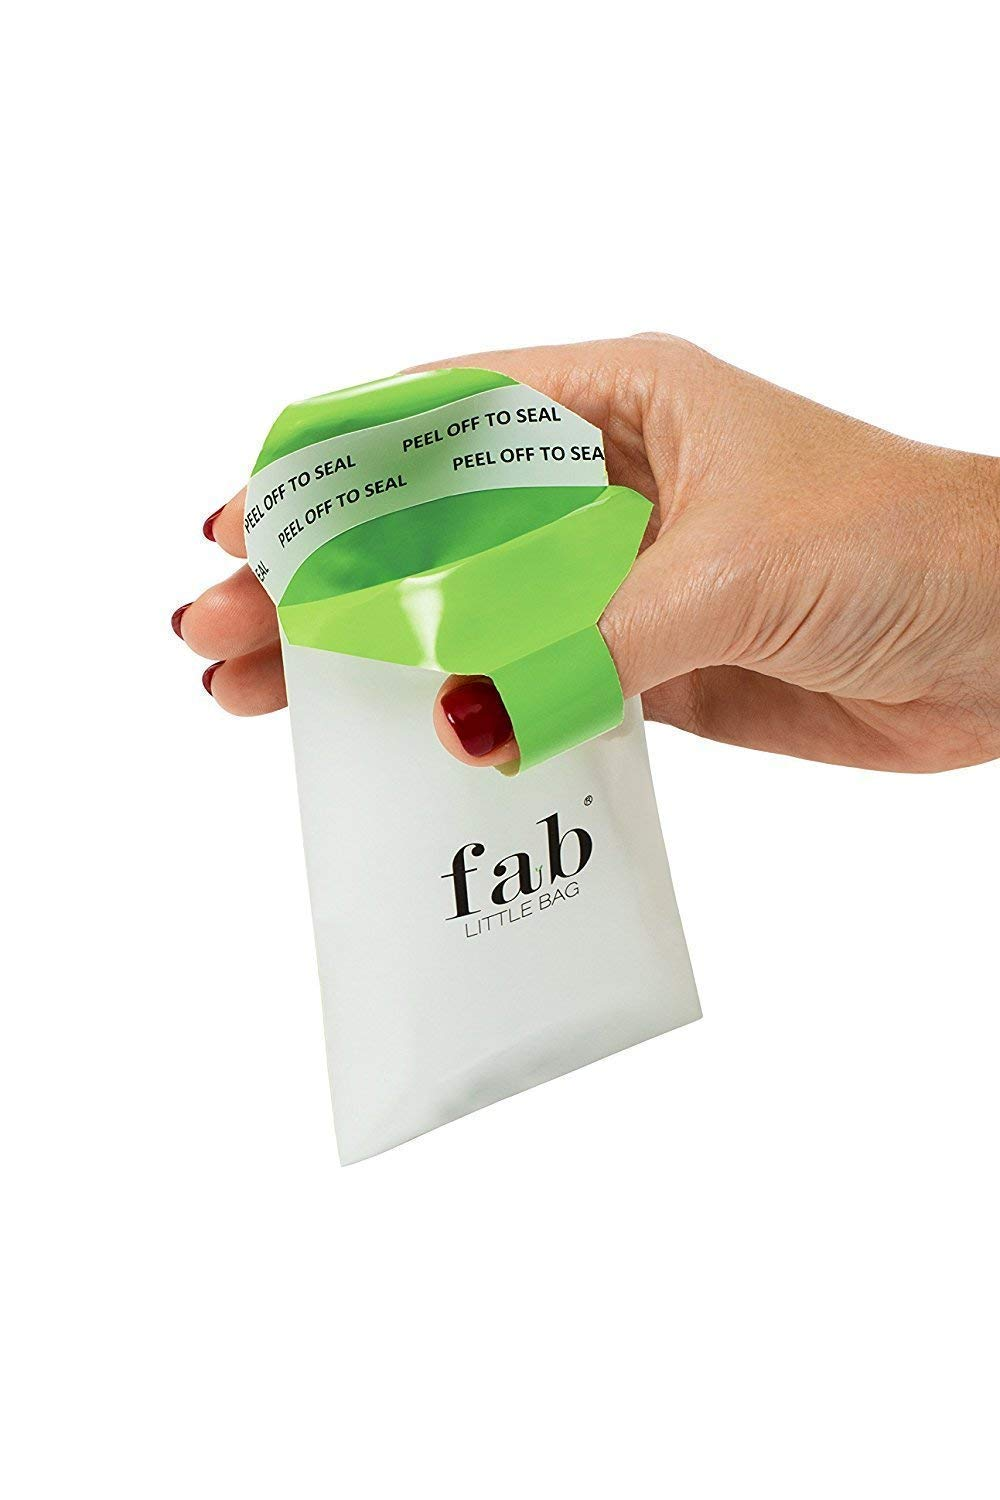 Fab Little Bag Starter Plus Pack with 45 Disposable Biodegradable Feminine Hygiene Product Bags